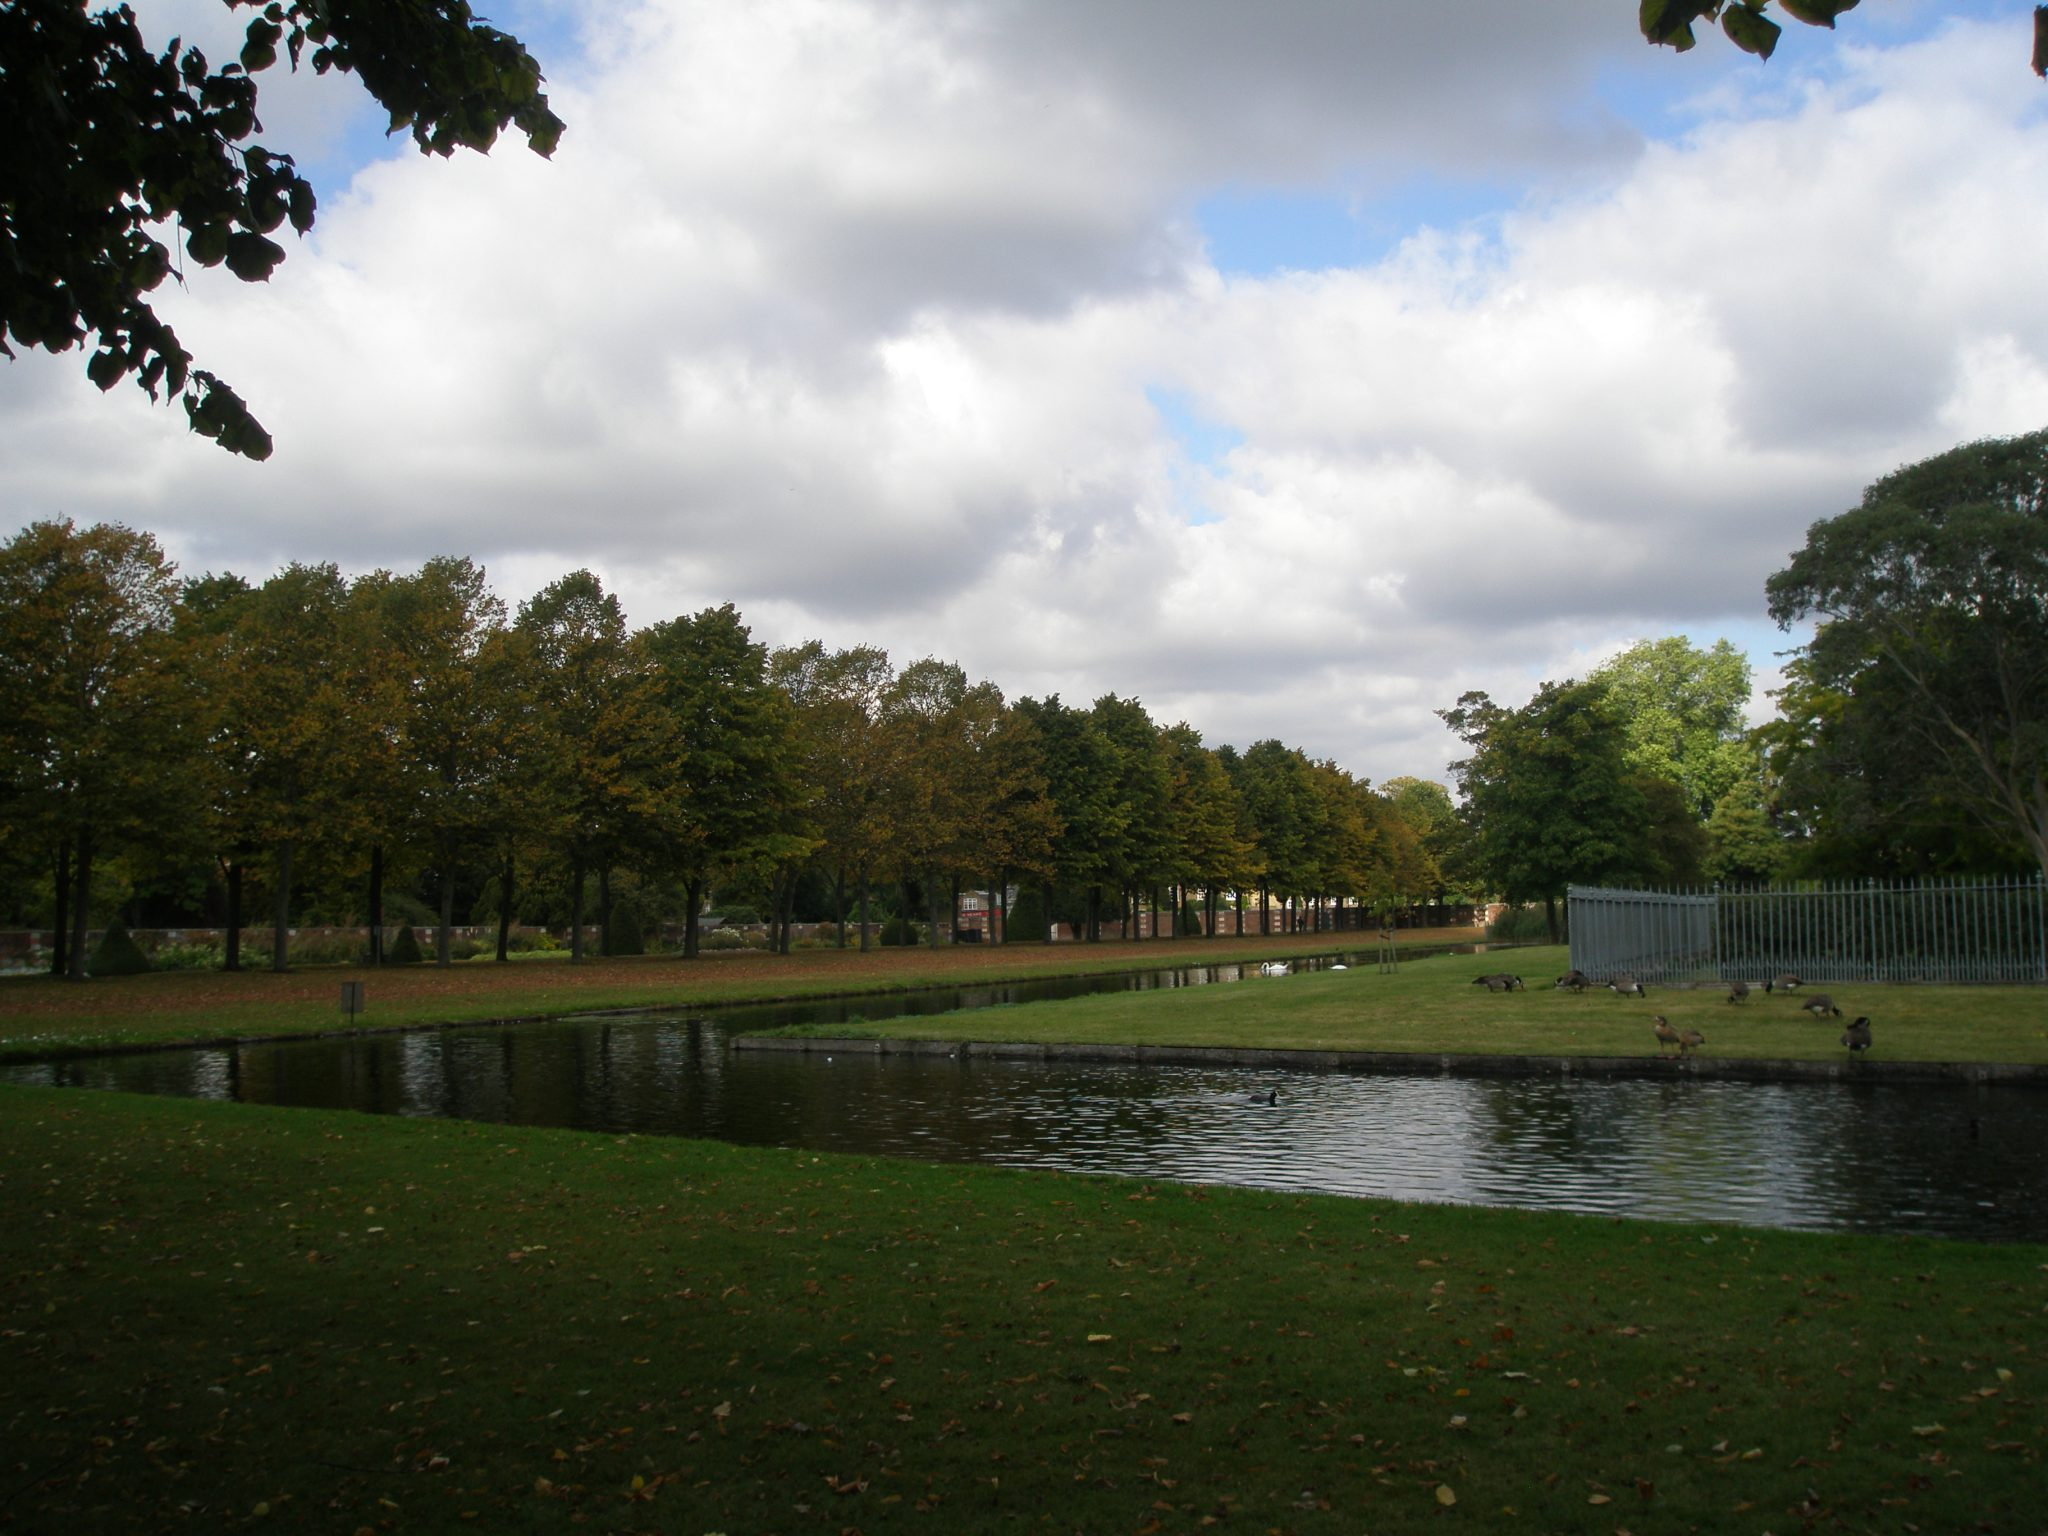 Moat separating Tennis Court Garden Area from the 20th Century Garden